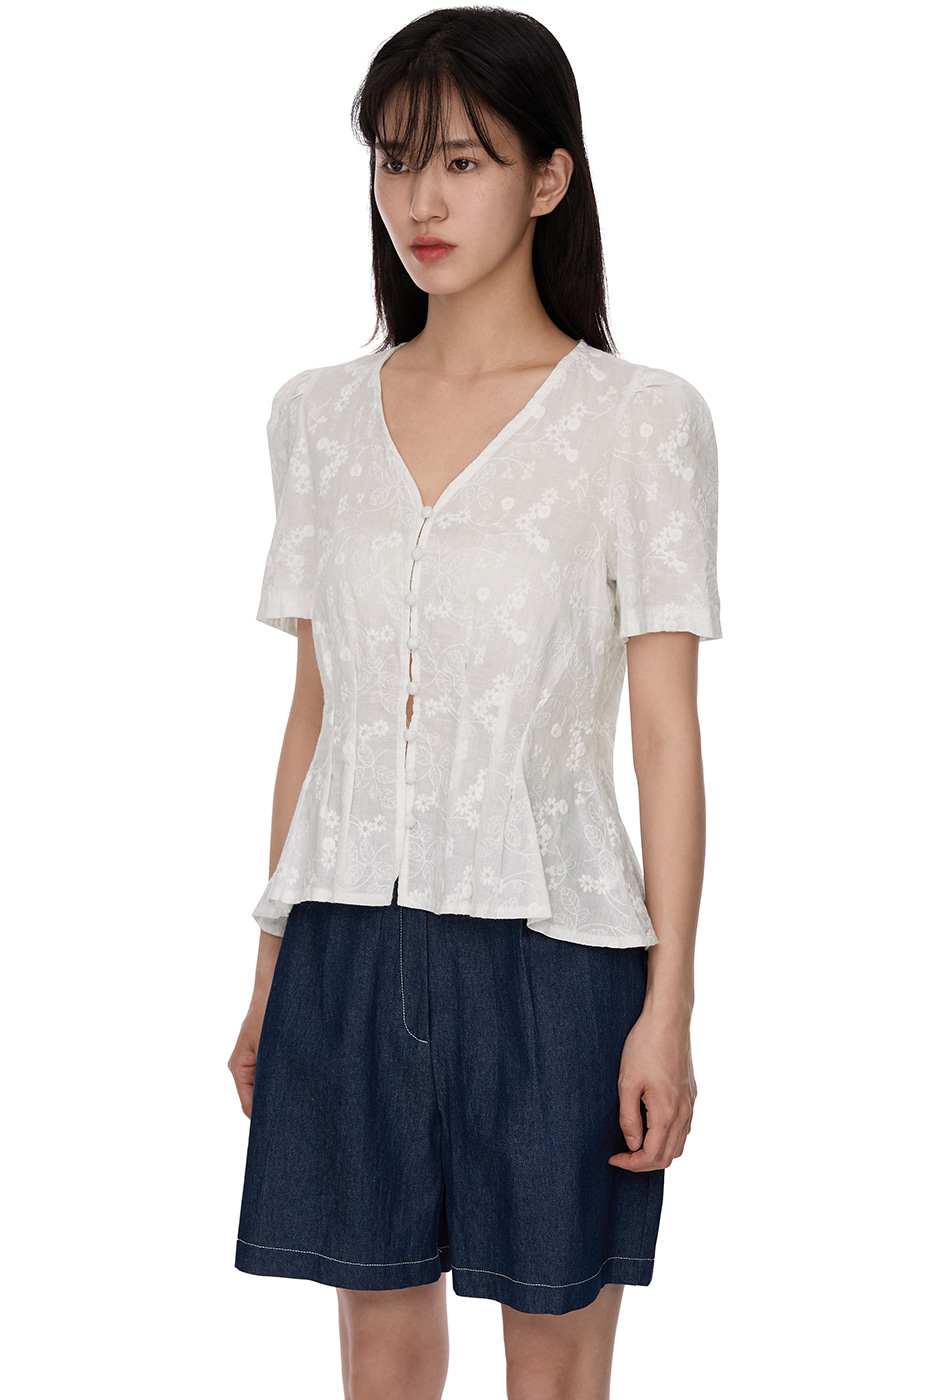 punched open blouse